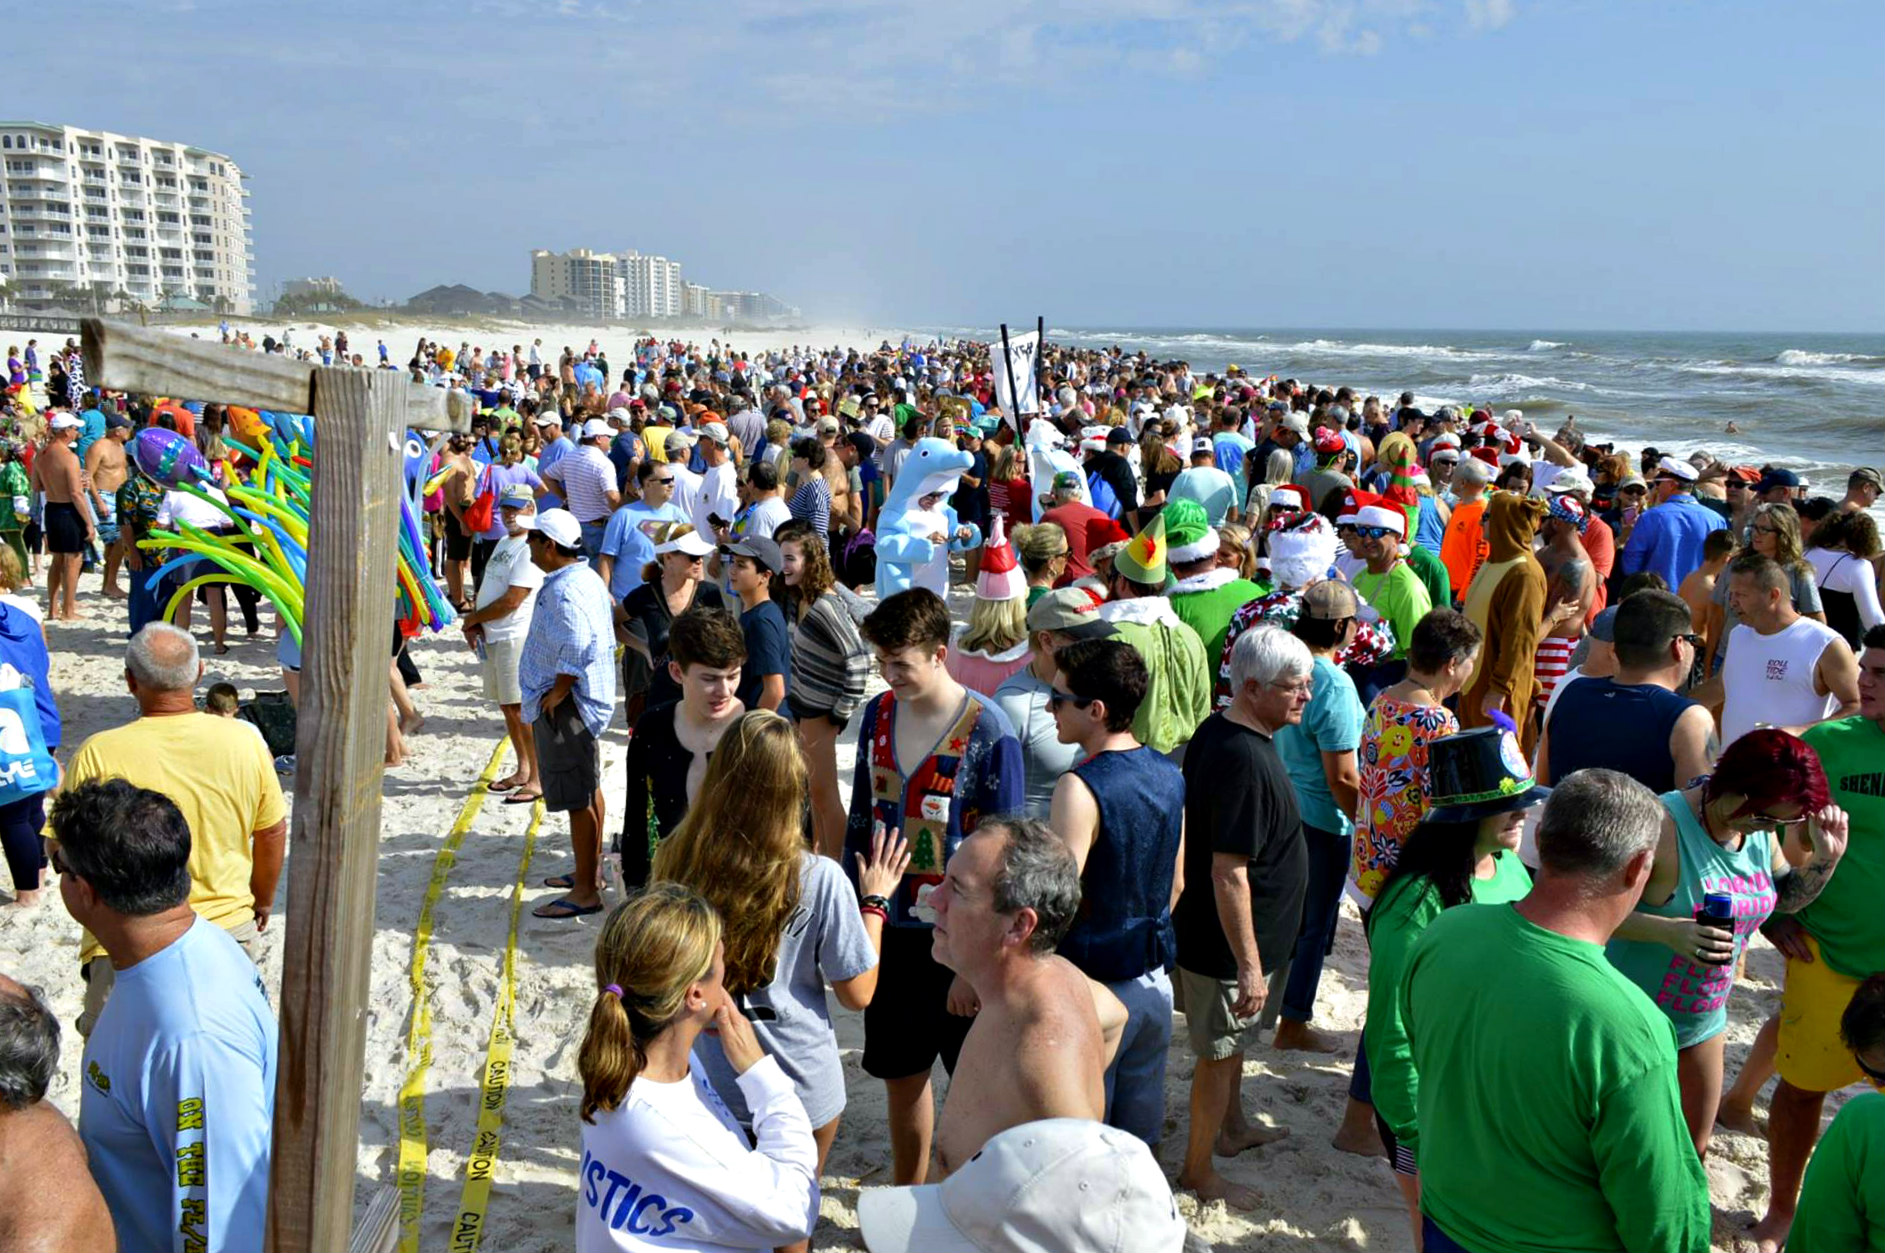 Flora-Bama Polar Bear Dip crowd taking chilly dip in the Gulf of Mexico